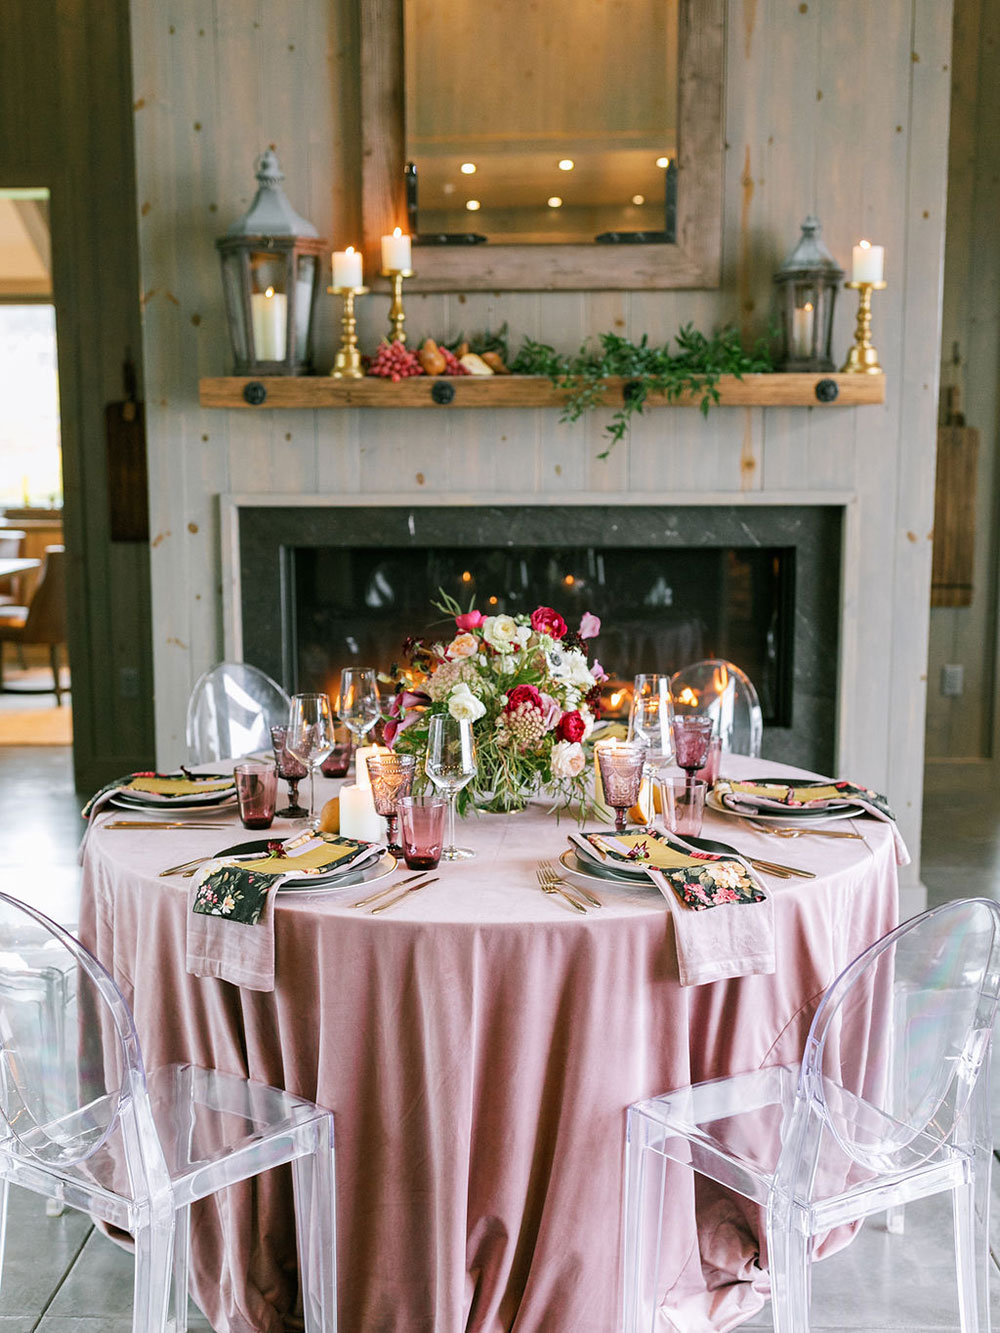 There was a small round table styled for the shoot with pink and floral linens, a bright centerpiece and colored glasses